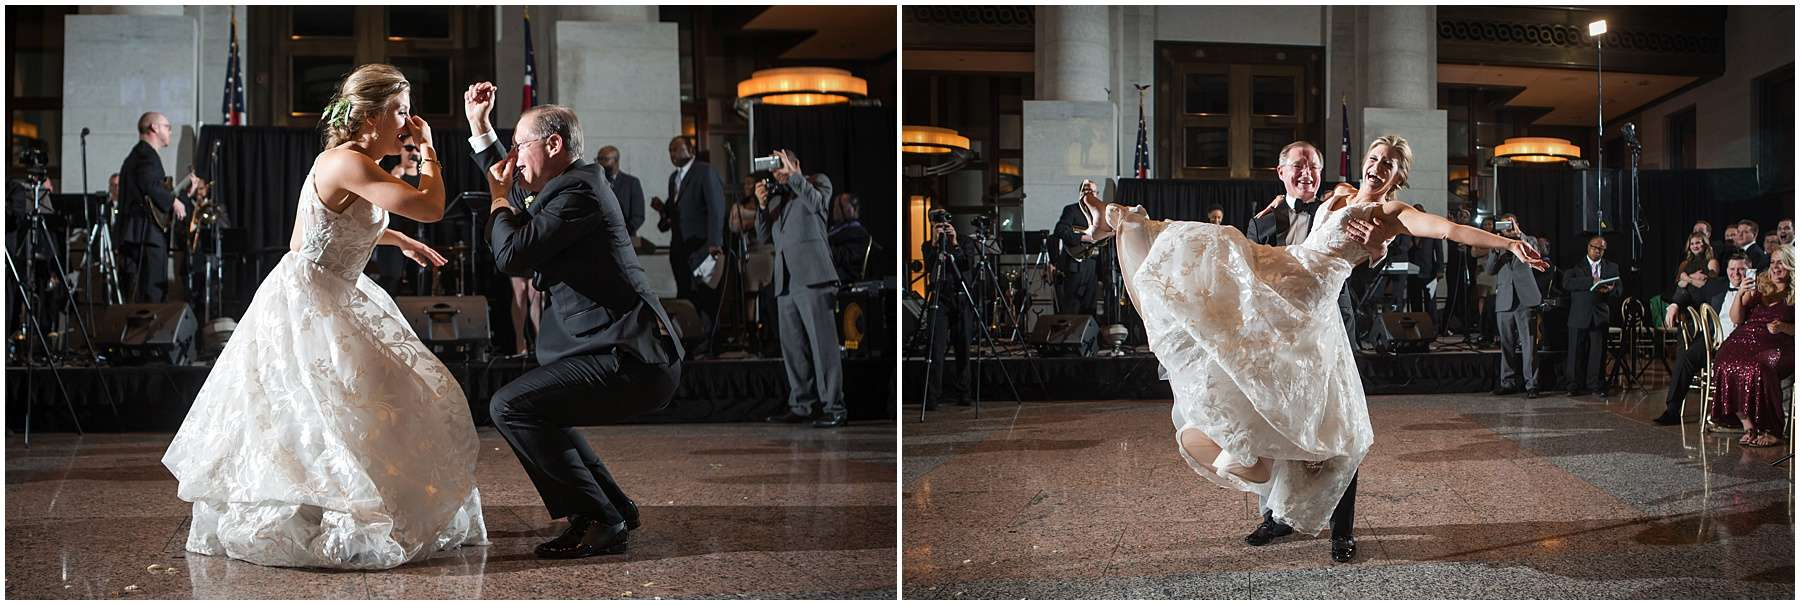 Wedding at the Ohio Statehouse | Columbus Ohio Weddings 220